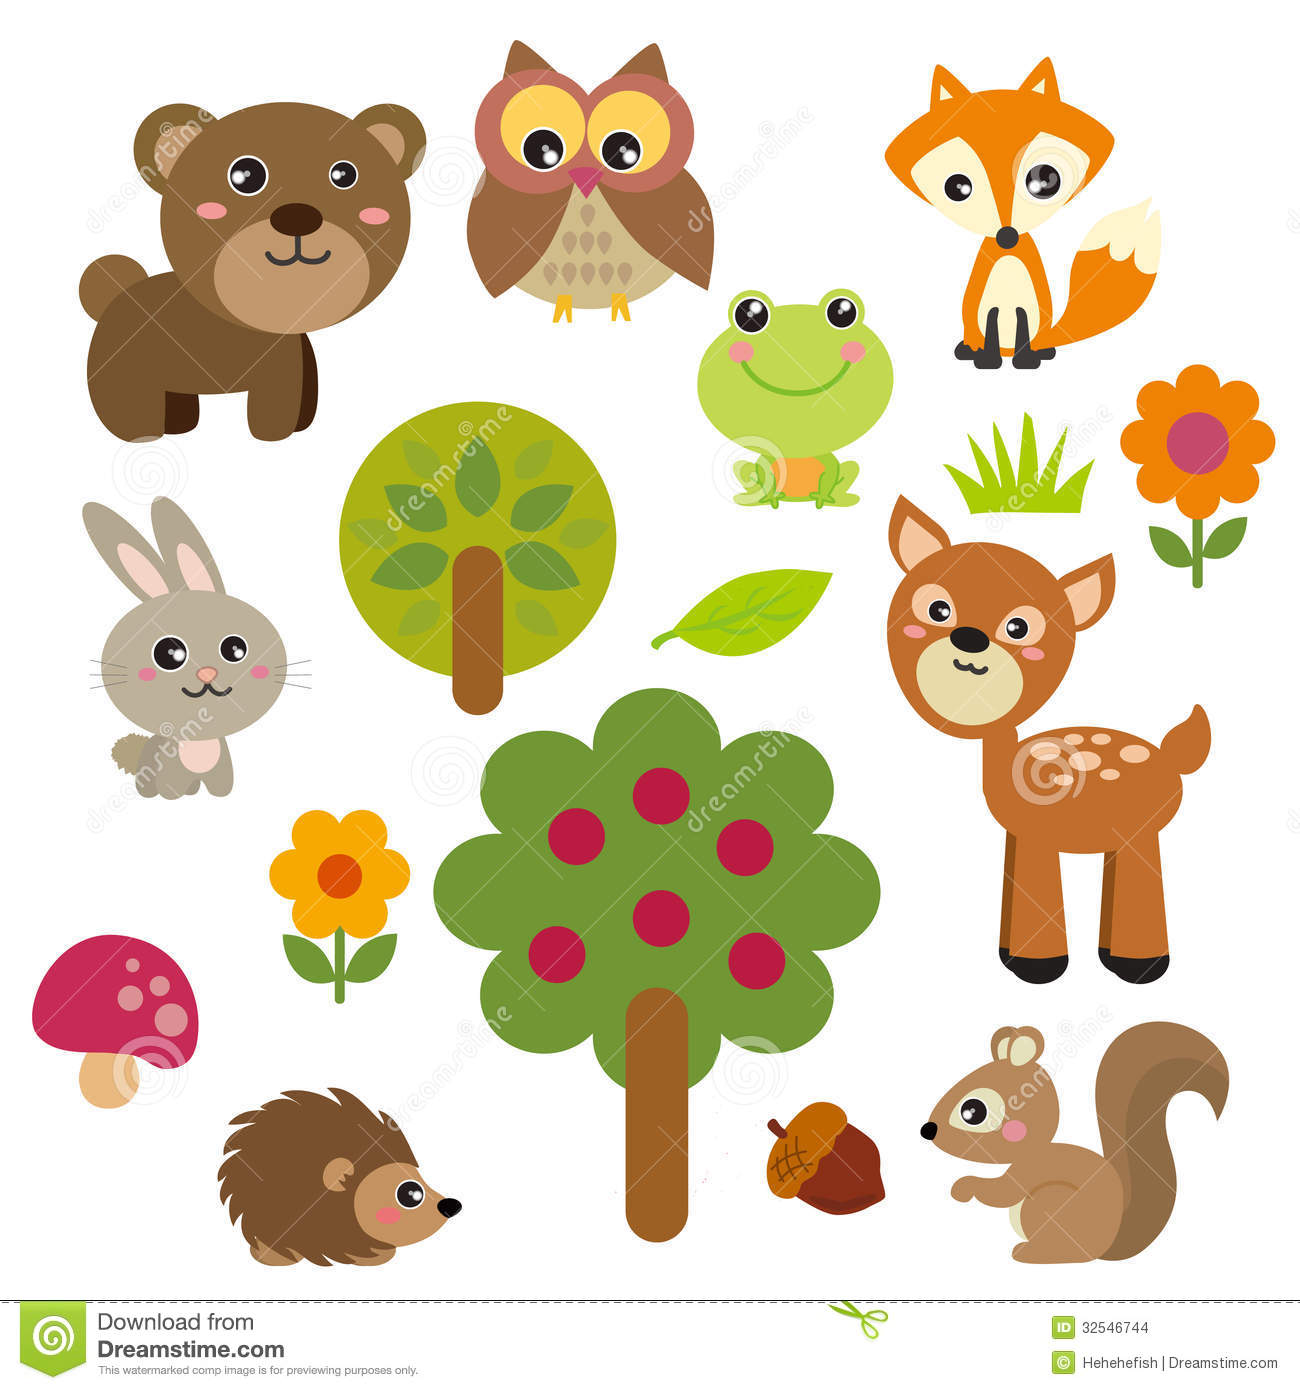 Realistic Woodland Animals Clipart